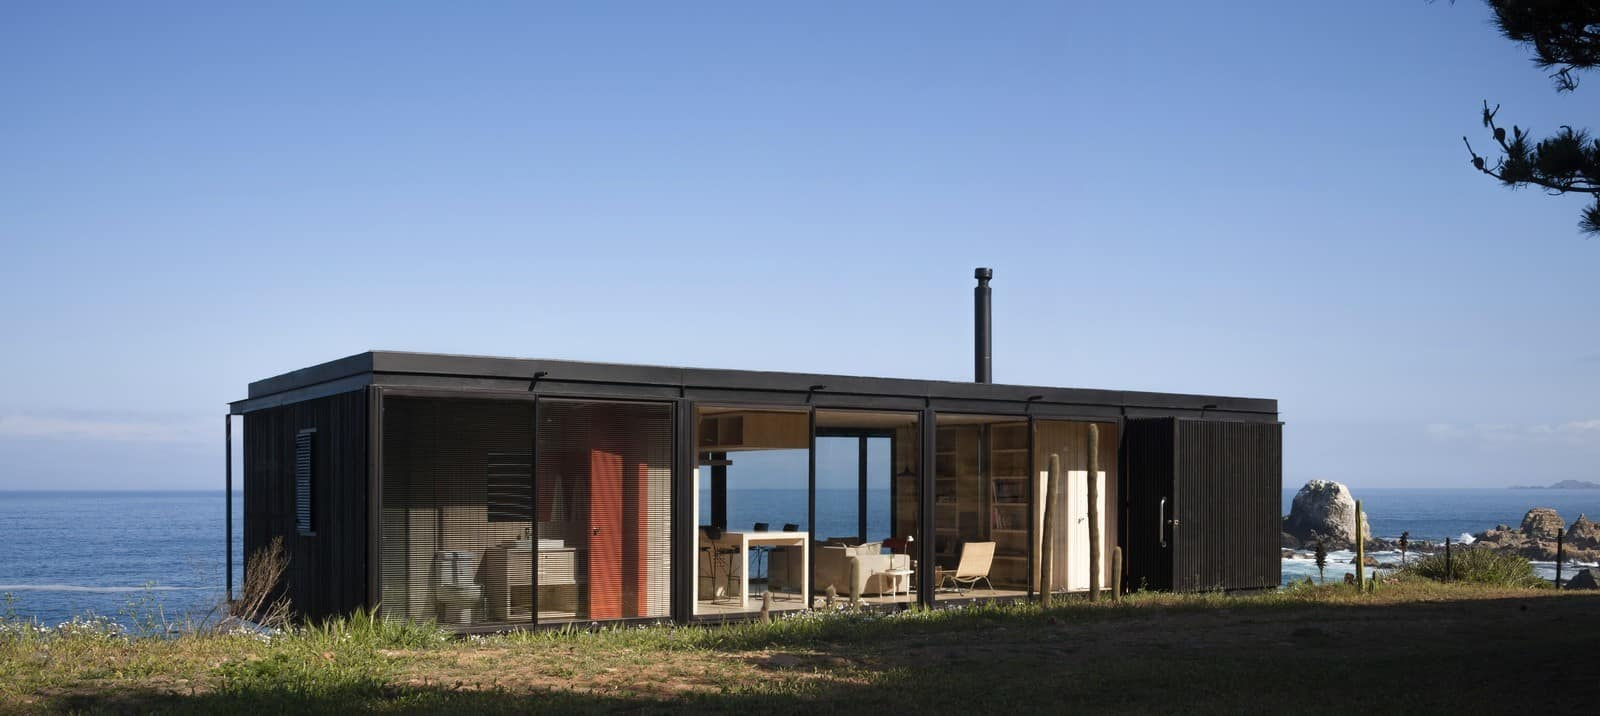 Remote Transportable Modular House in Chile by Felipe Assadi 7